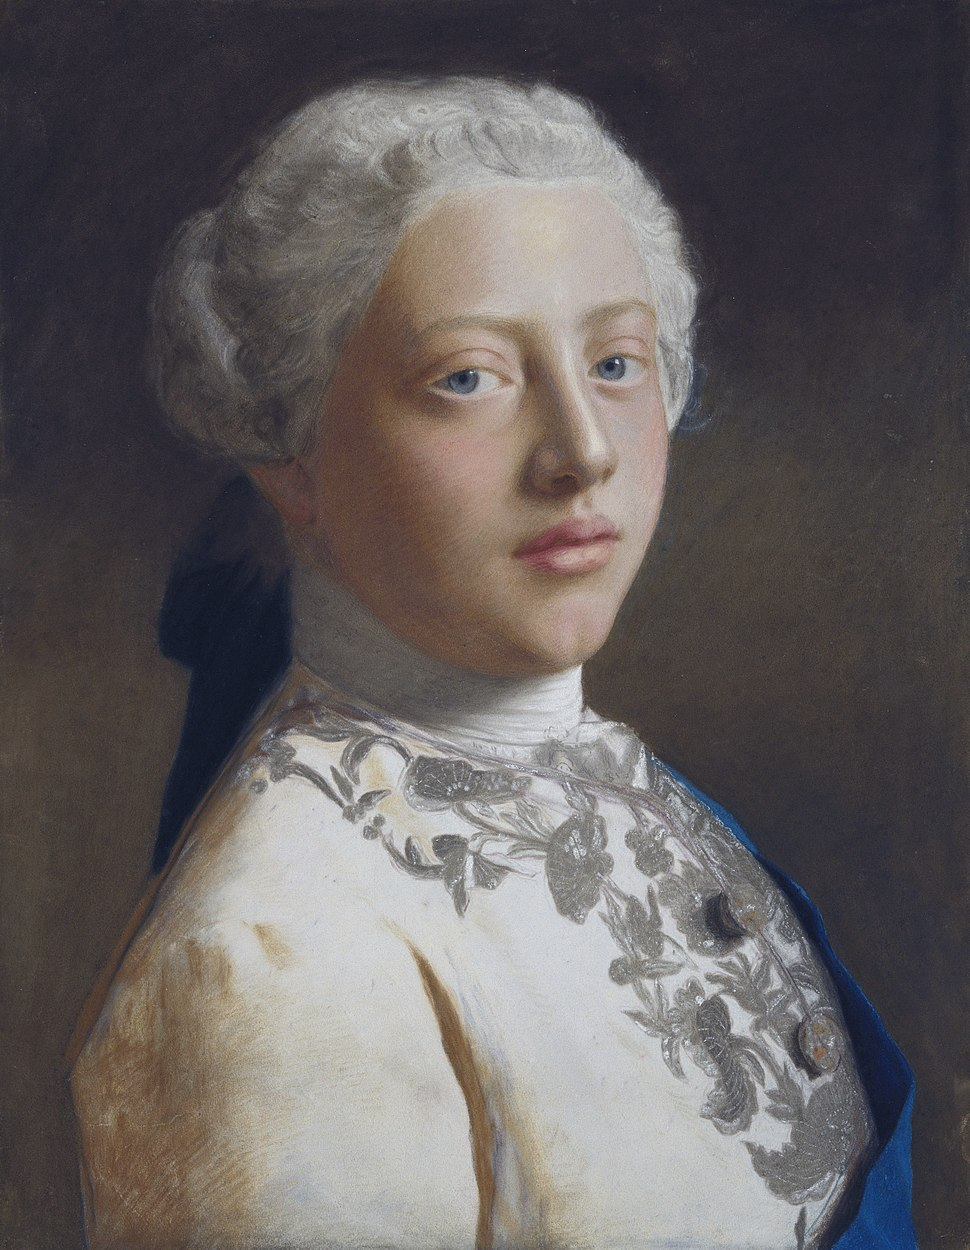 George, Prince of Wales (1738-1820), by Jean-Étienne Liotard